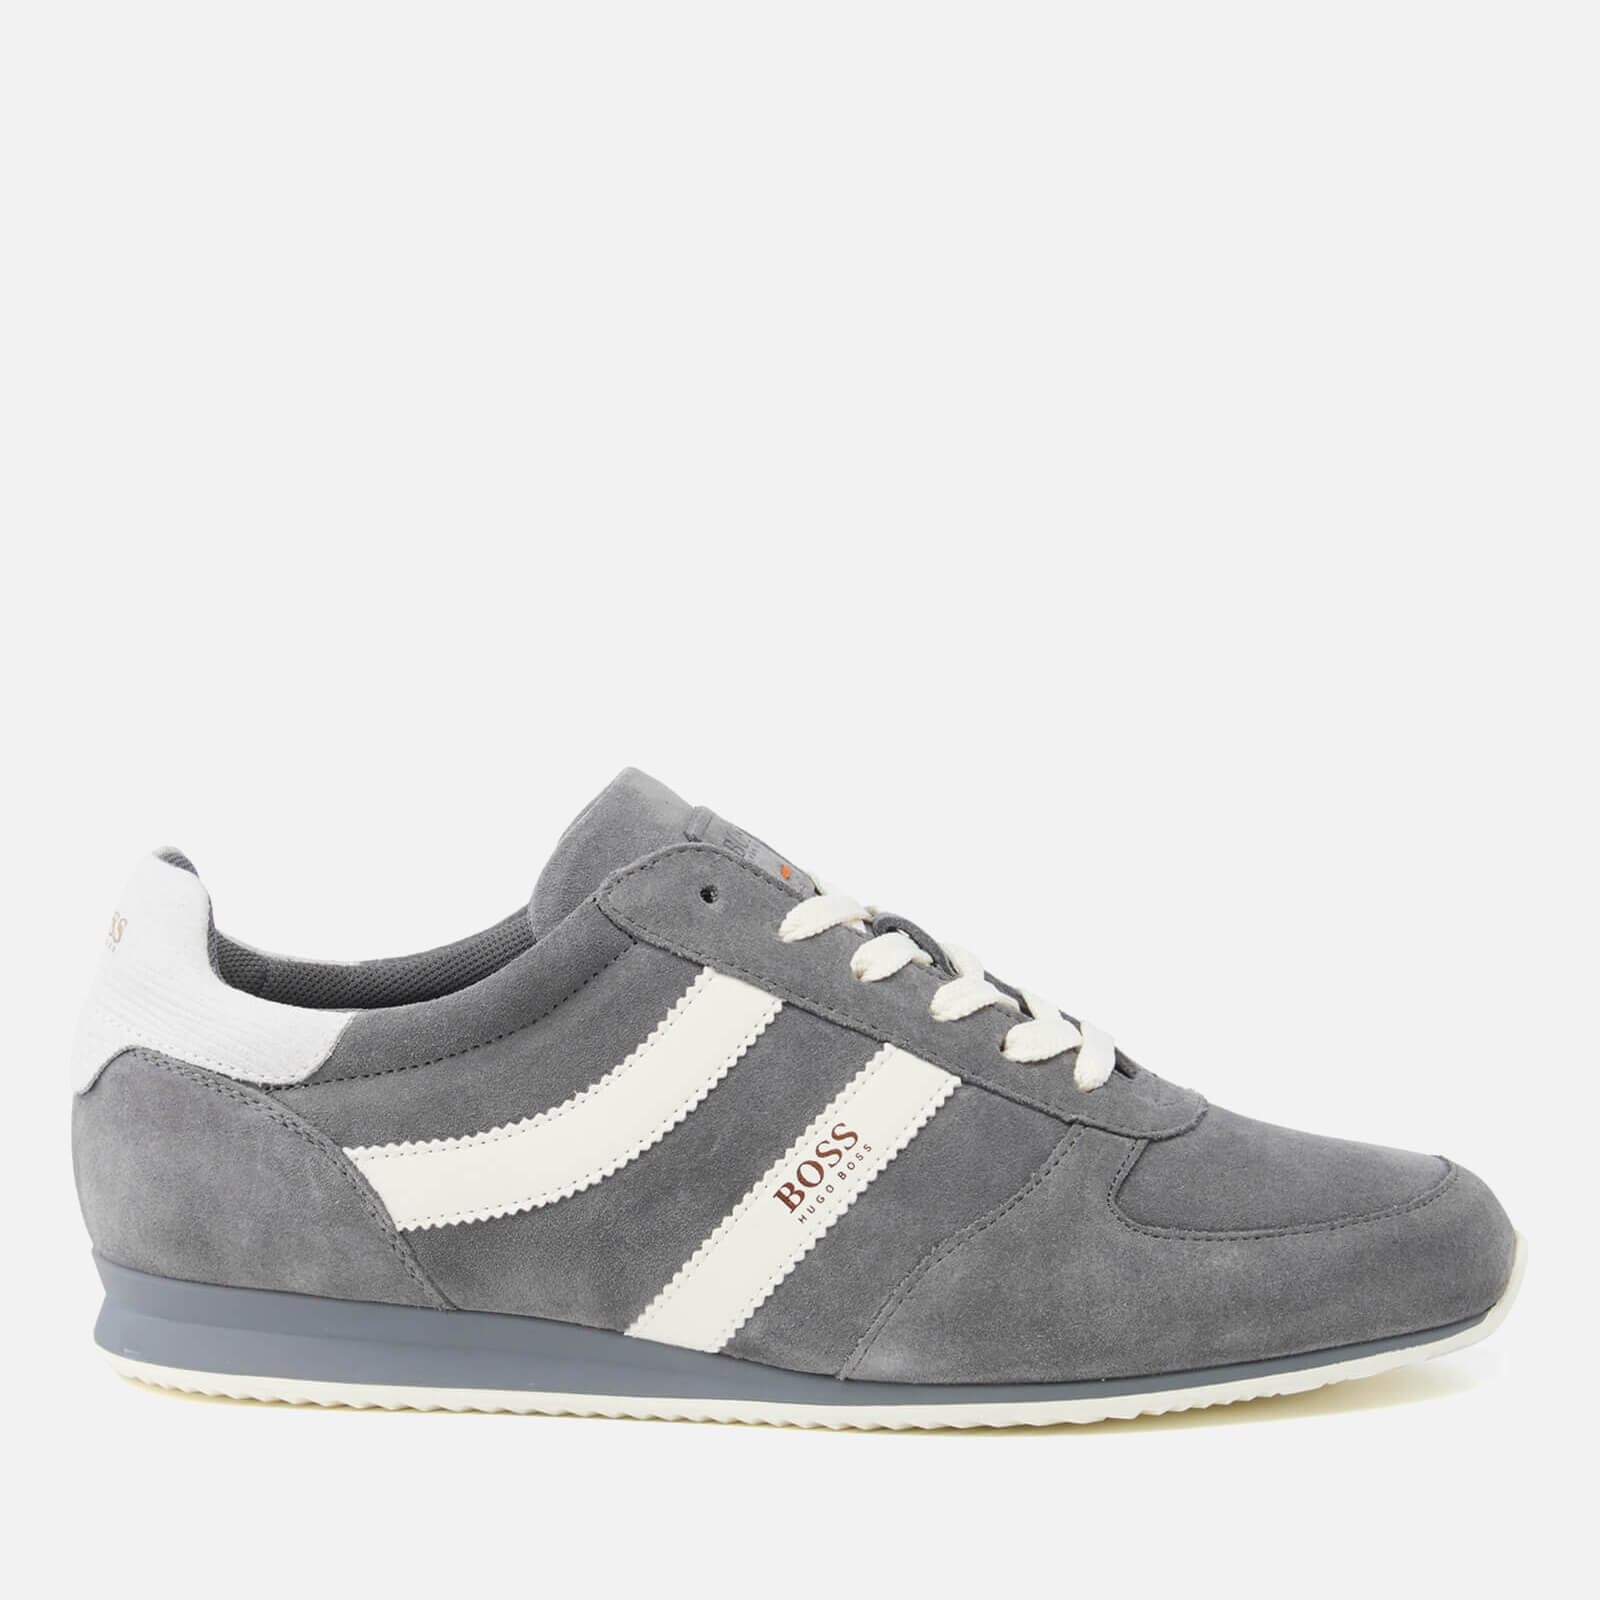 43f8b37dbc700 BOSS Orange Men's Orland Runn Suede Trainers - Medium Grey | FREE UK  Delivery | Allsole